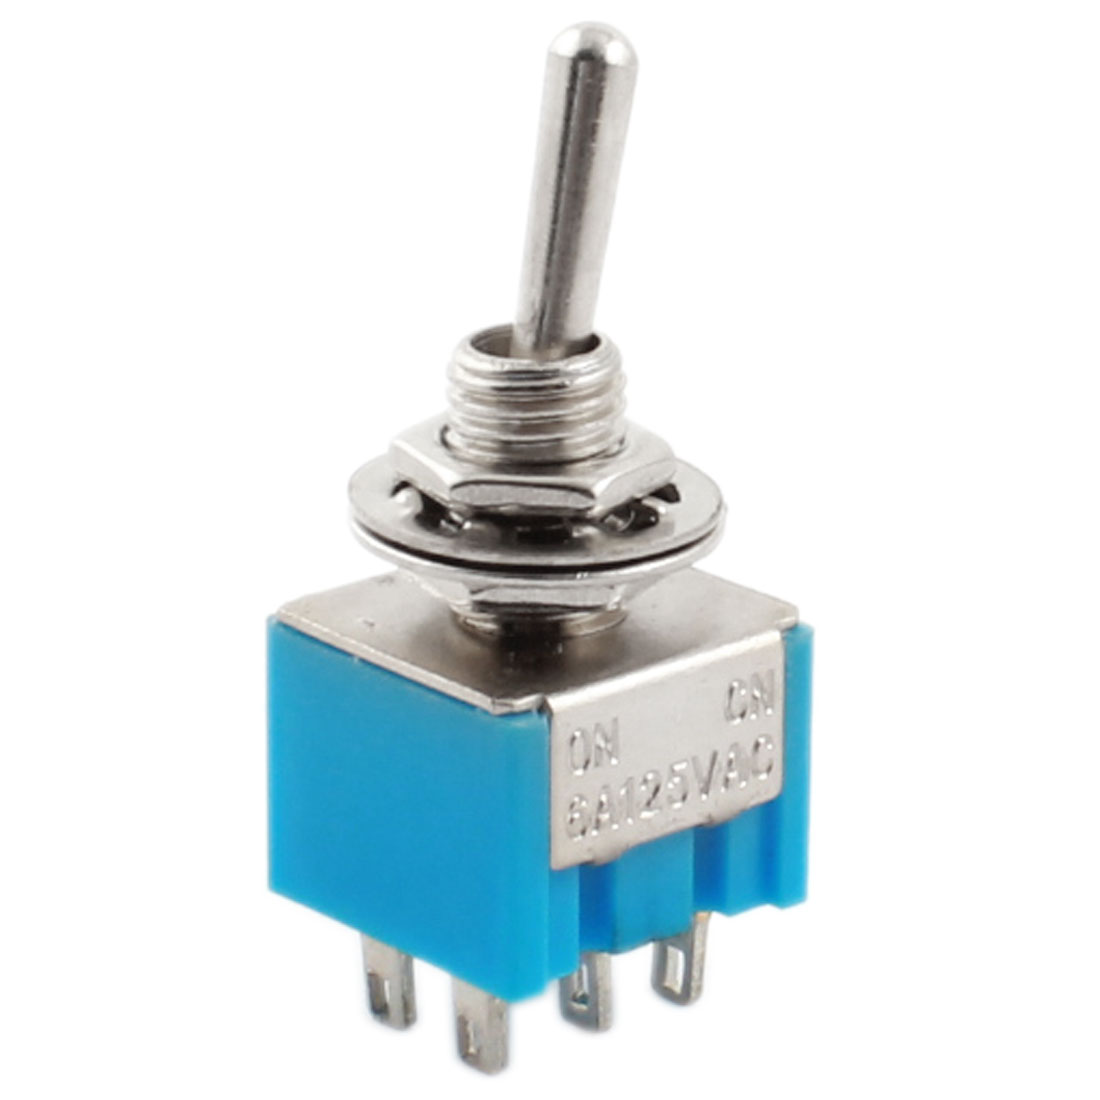 AC 125V 6A Rocker Type DPDT Latching 6 Terminals Toggle Switch